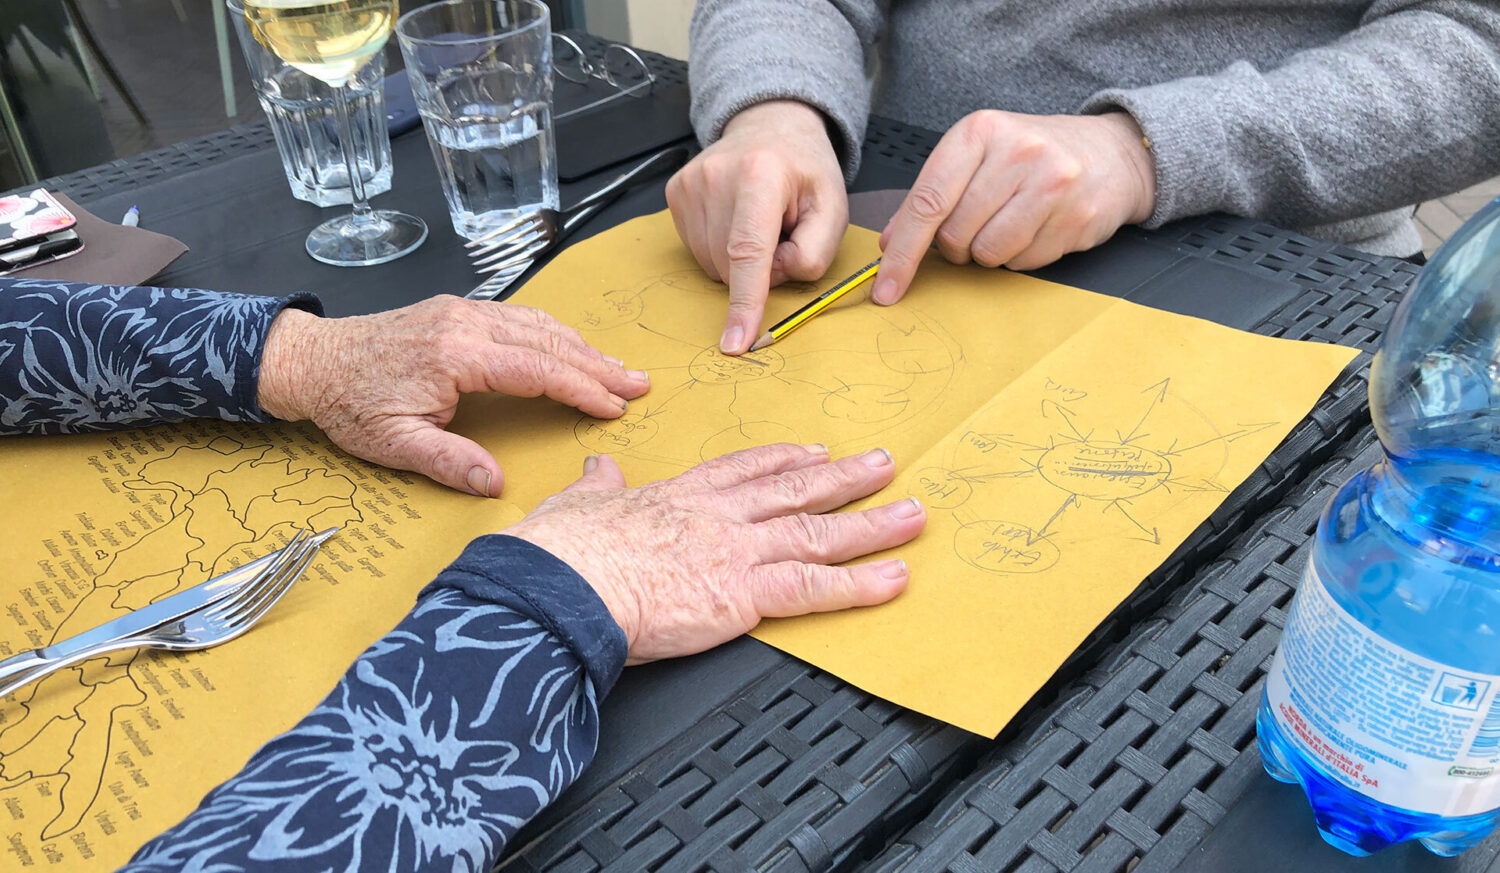 Two people plan a digital strategy on the back of a paper placemat on paper over lunch